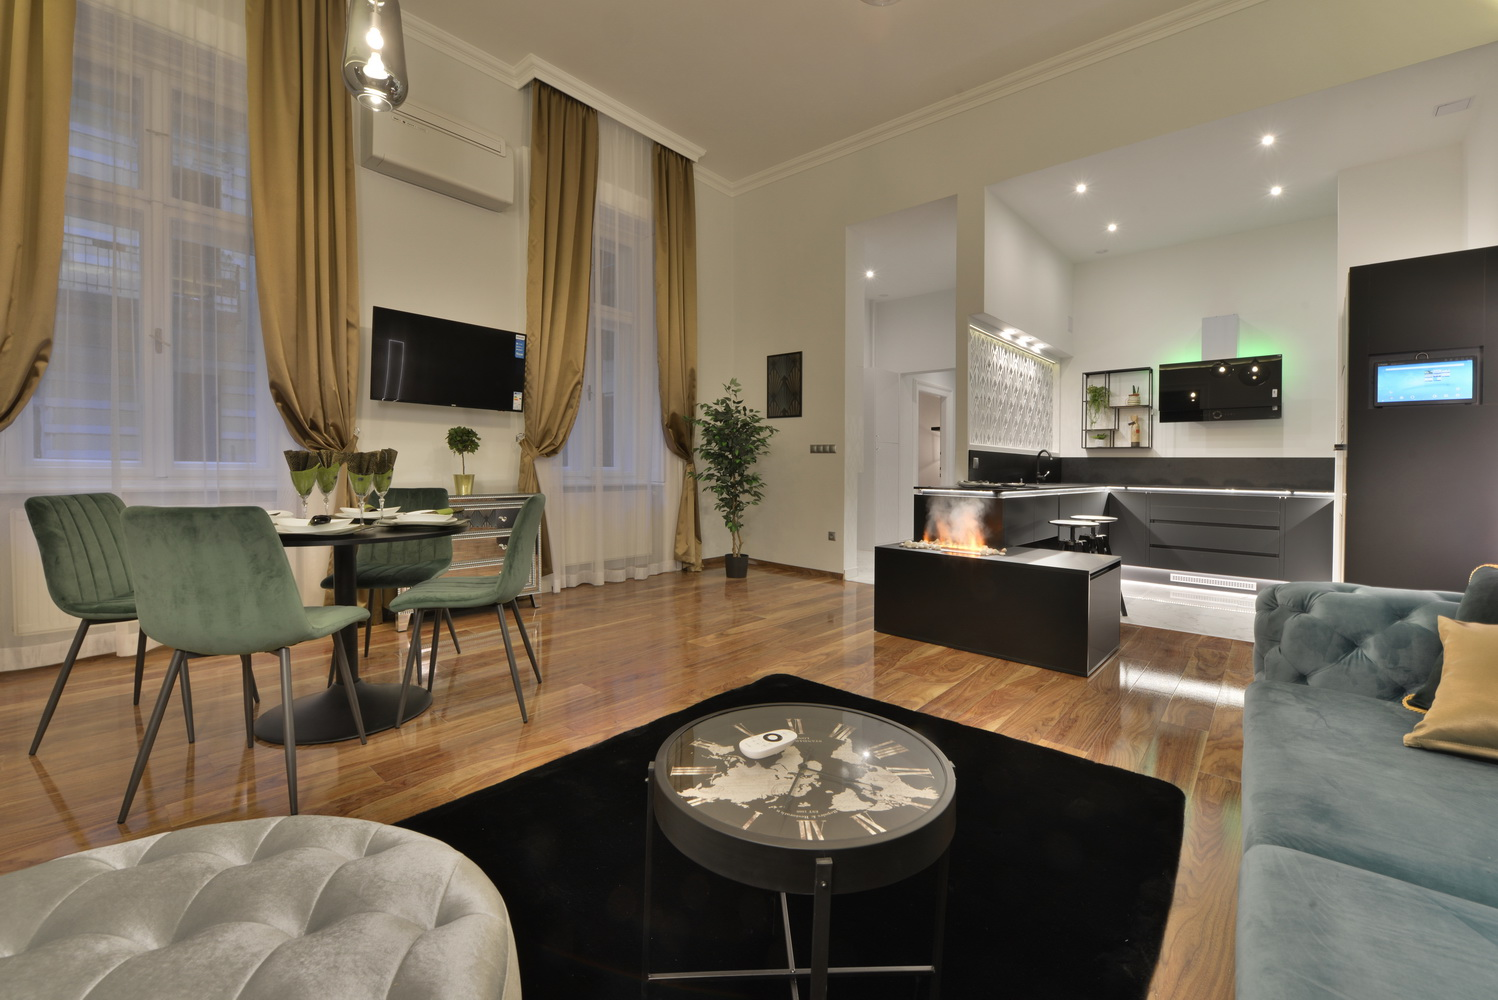 District 5 luxury flat for sale - Best Budapest Real ...